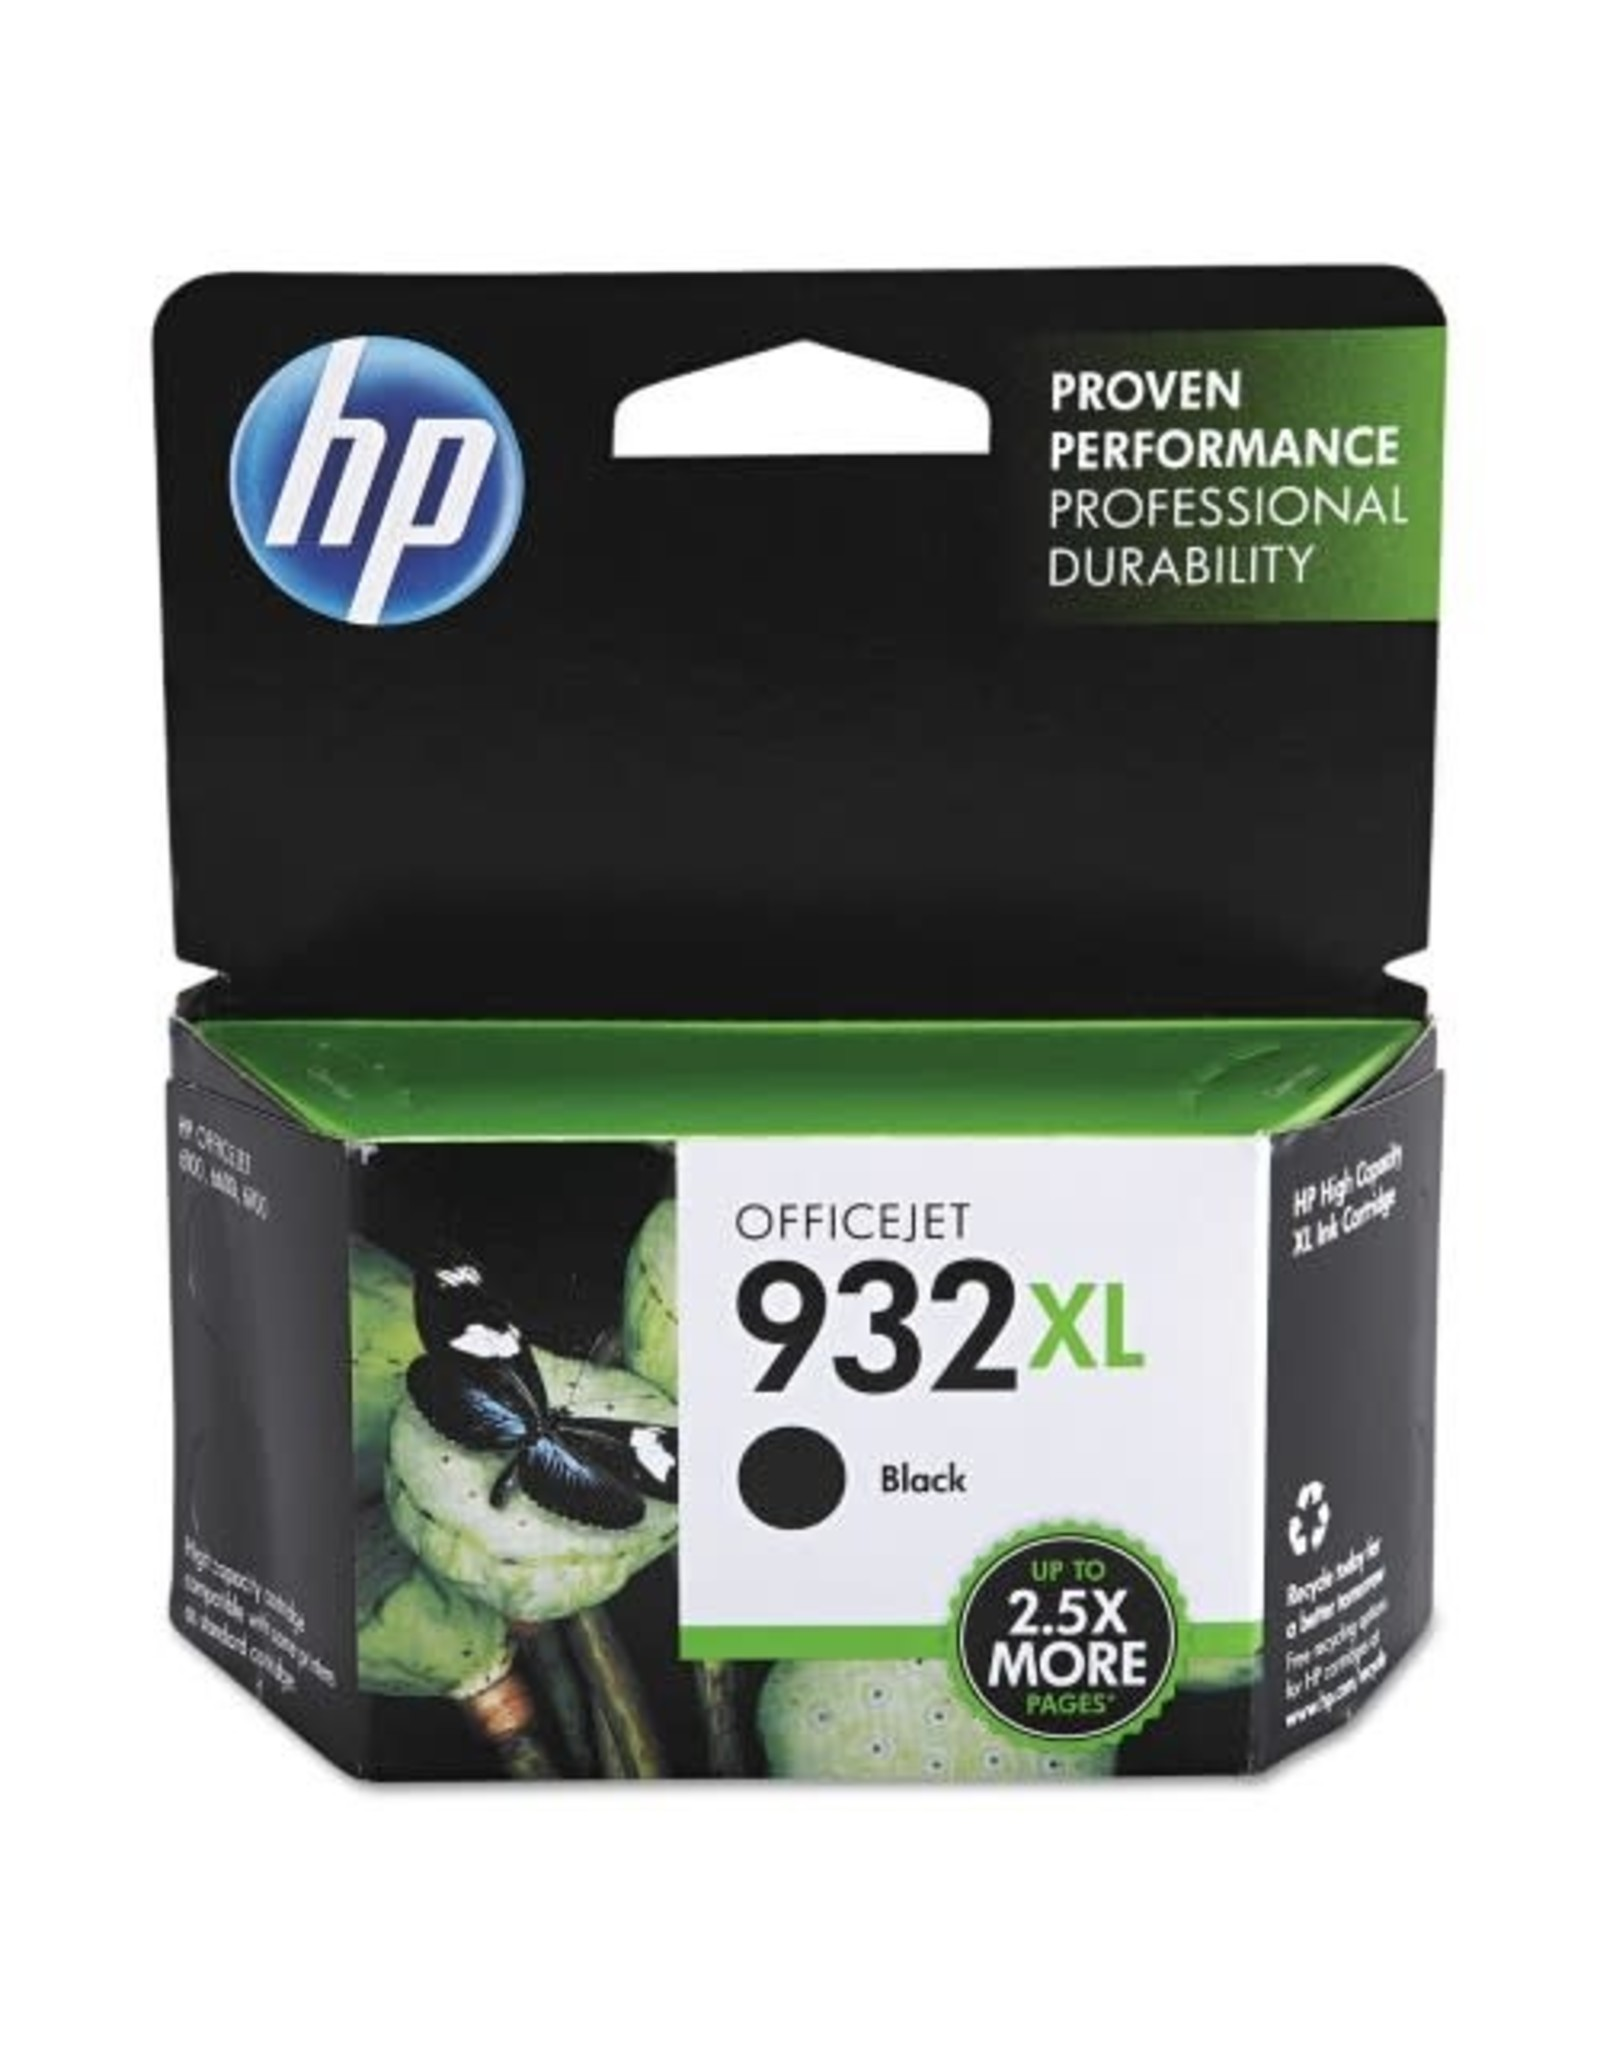 HP INKJET CARTRIDGE-HP #932XL BLACK HIGH YIELD